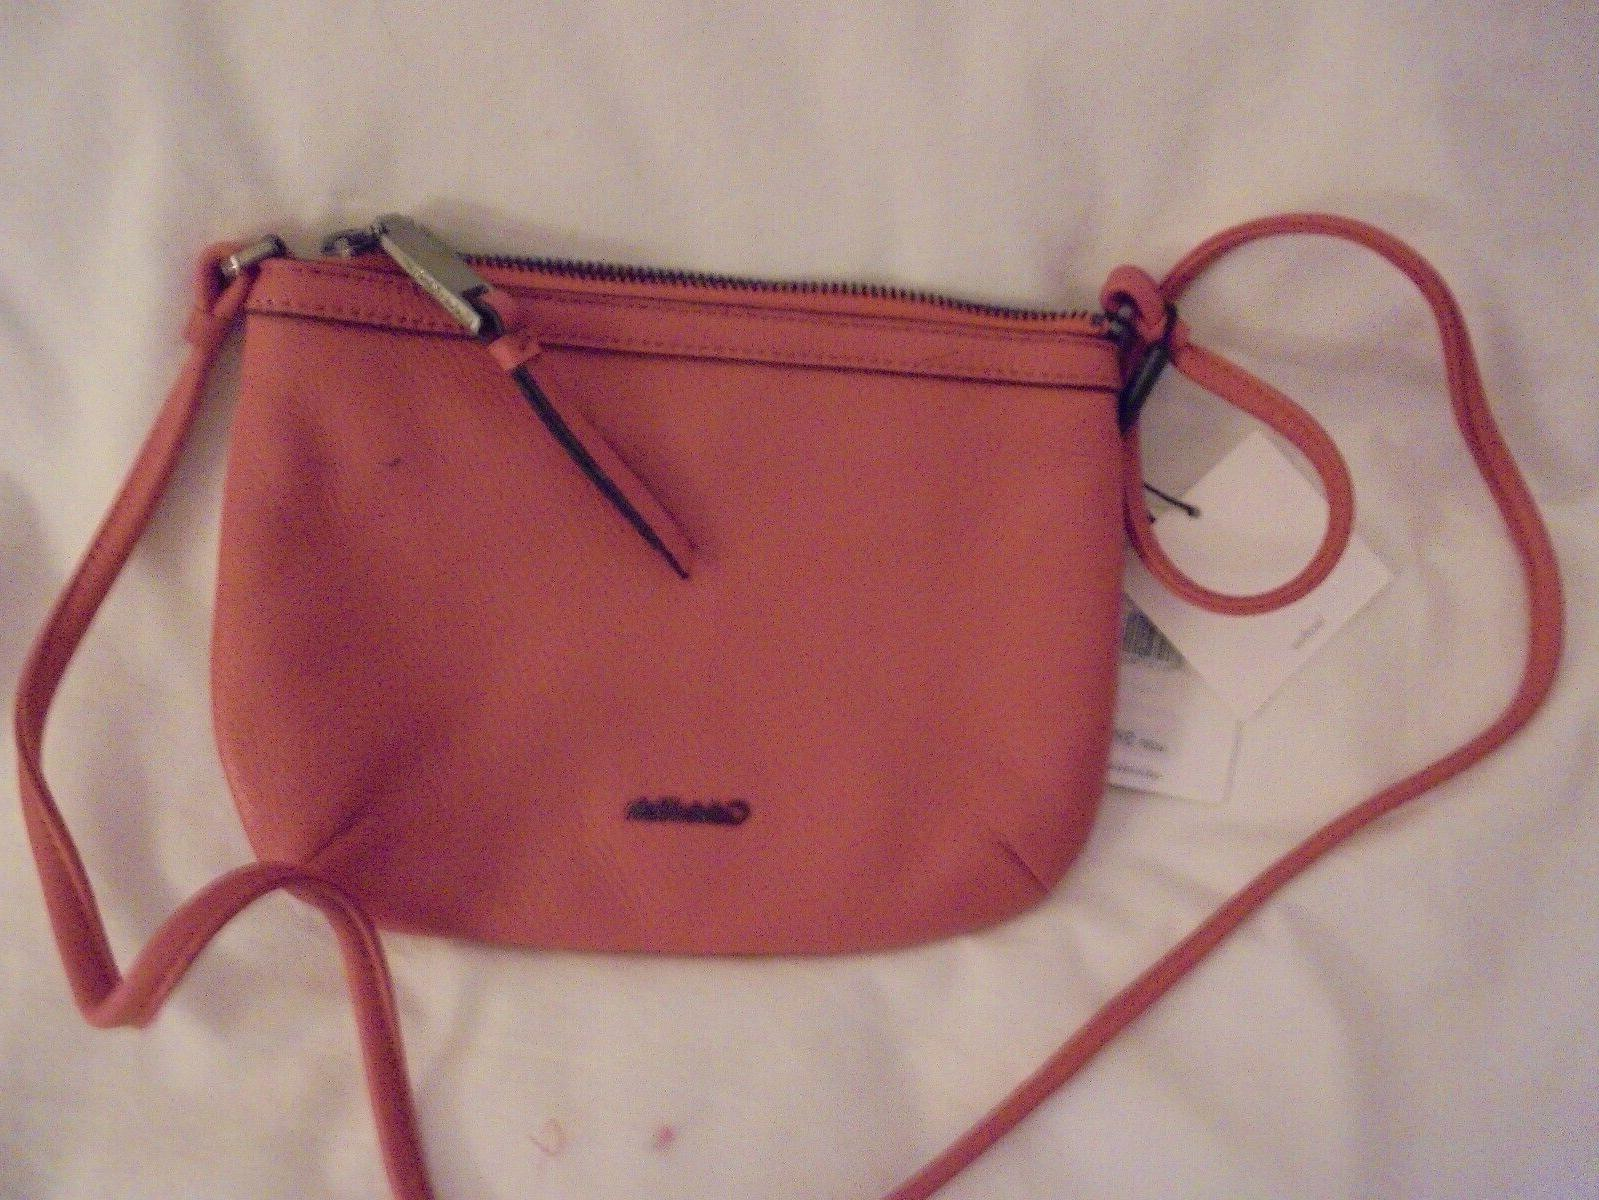 small pebbled leather crossbody bag purse persimmom